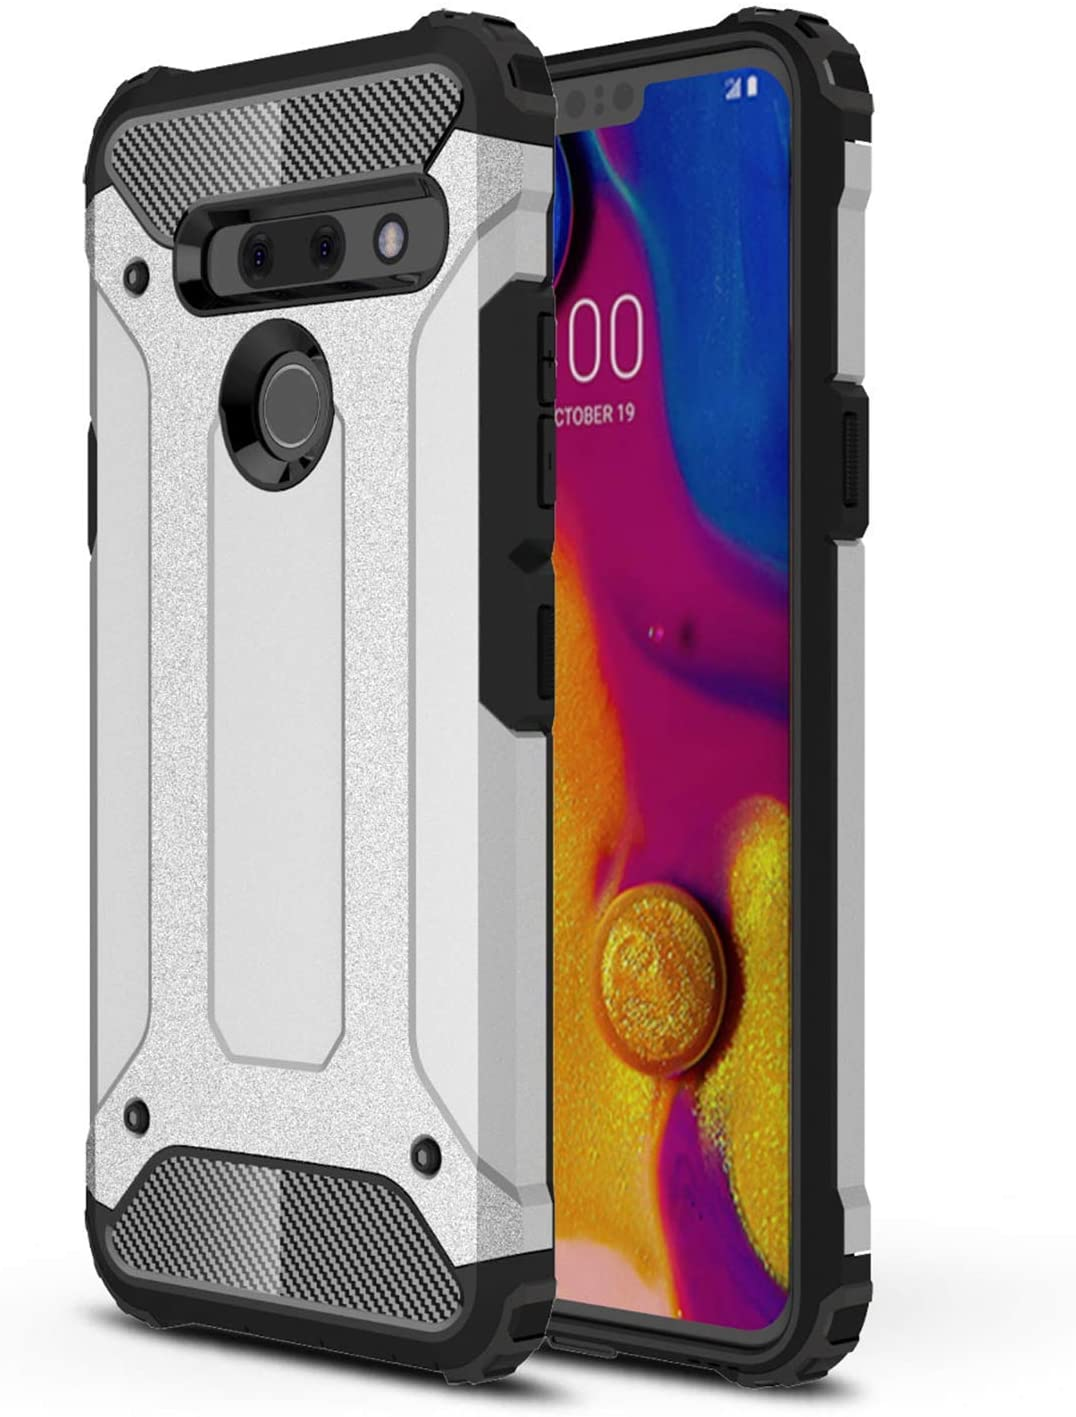 Vultic Armor LG G6 Case, Heavy Duty Durable Hard [Drop Protection] Bumper Cover for LG G6 (Grey)